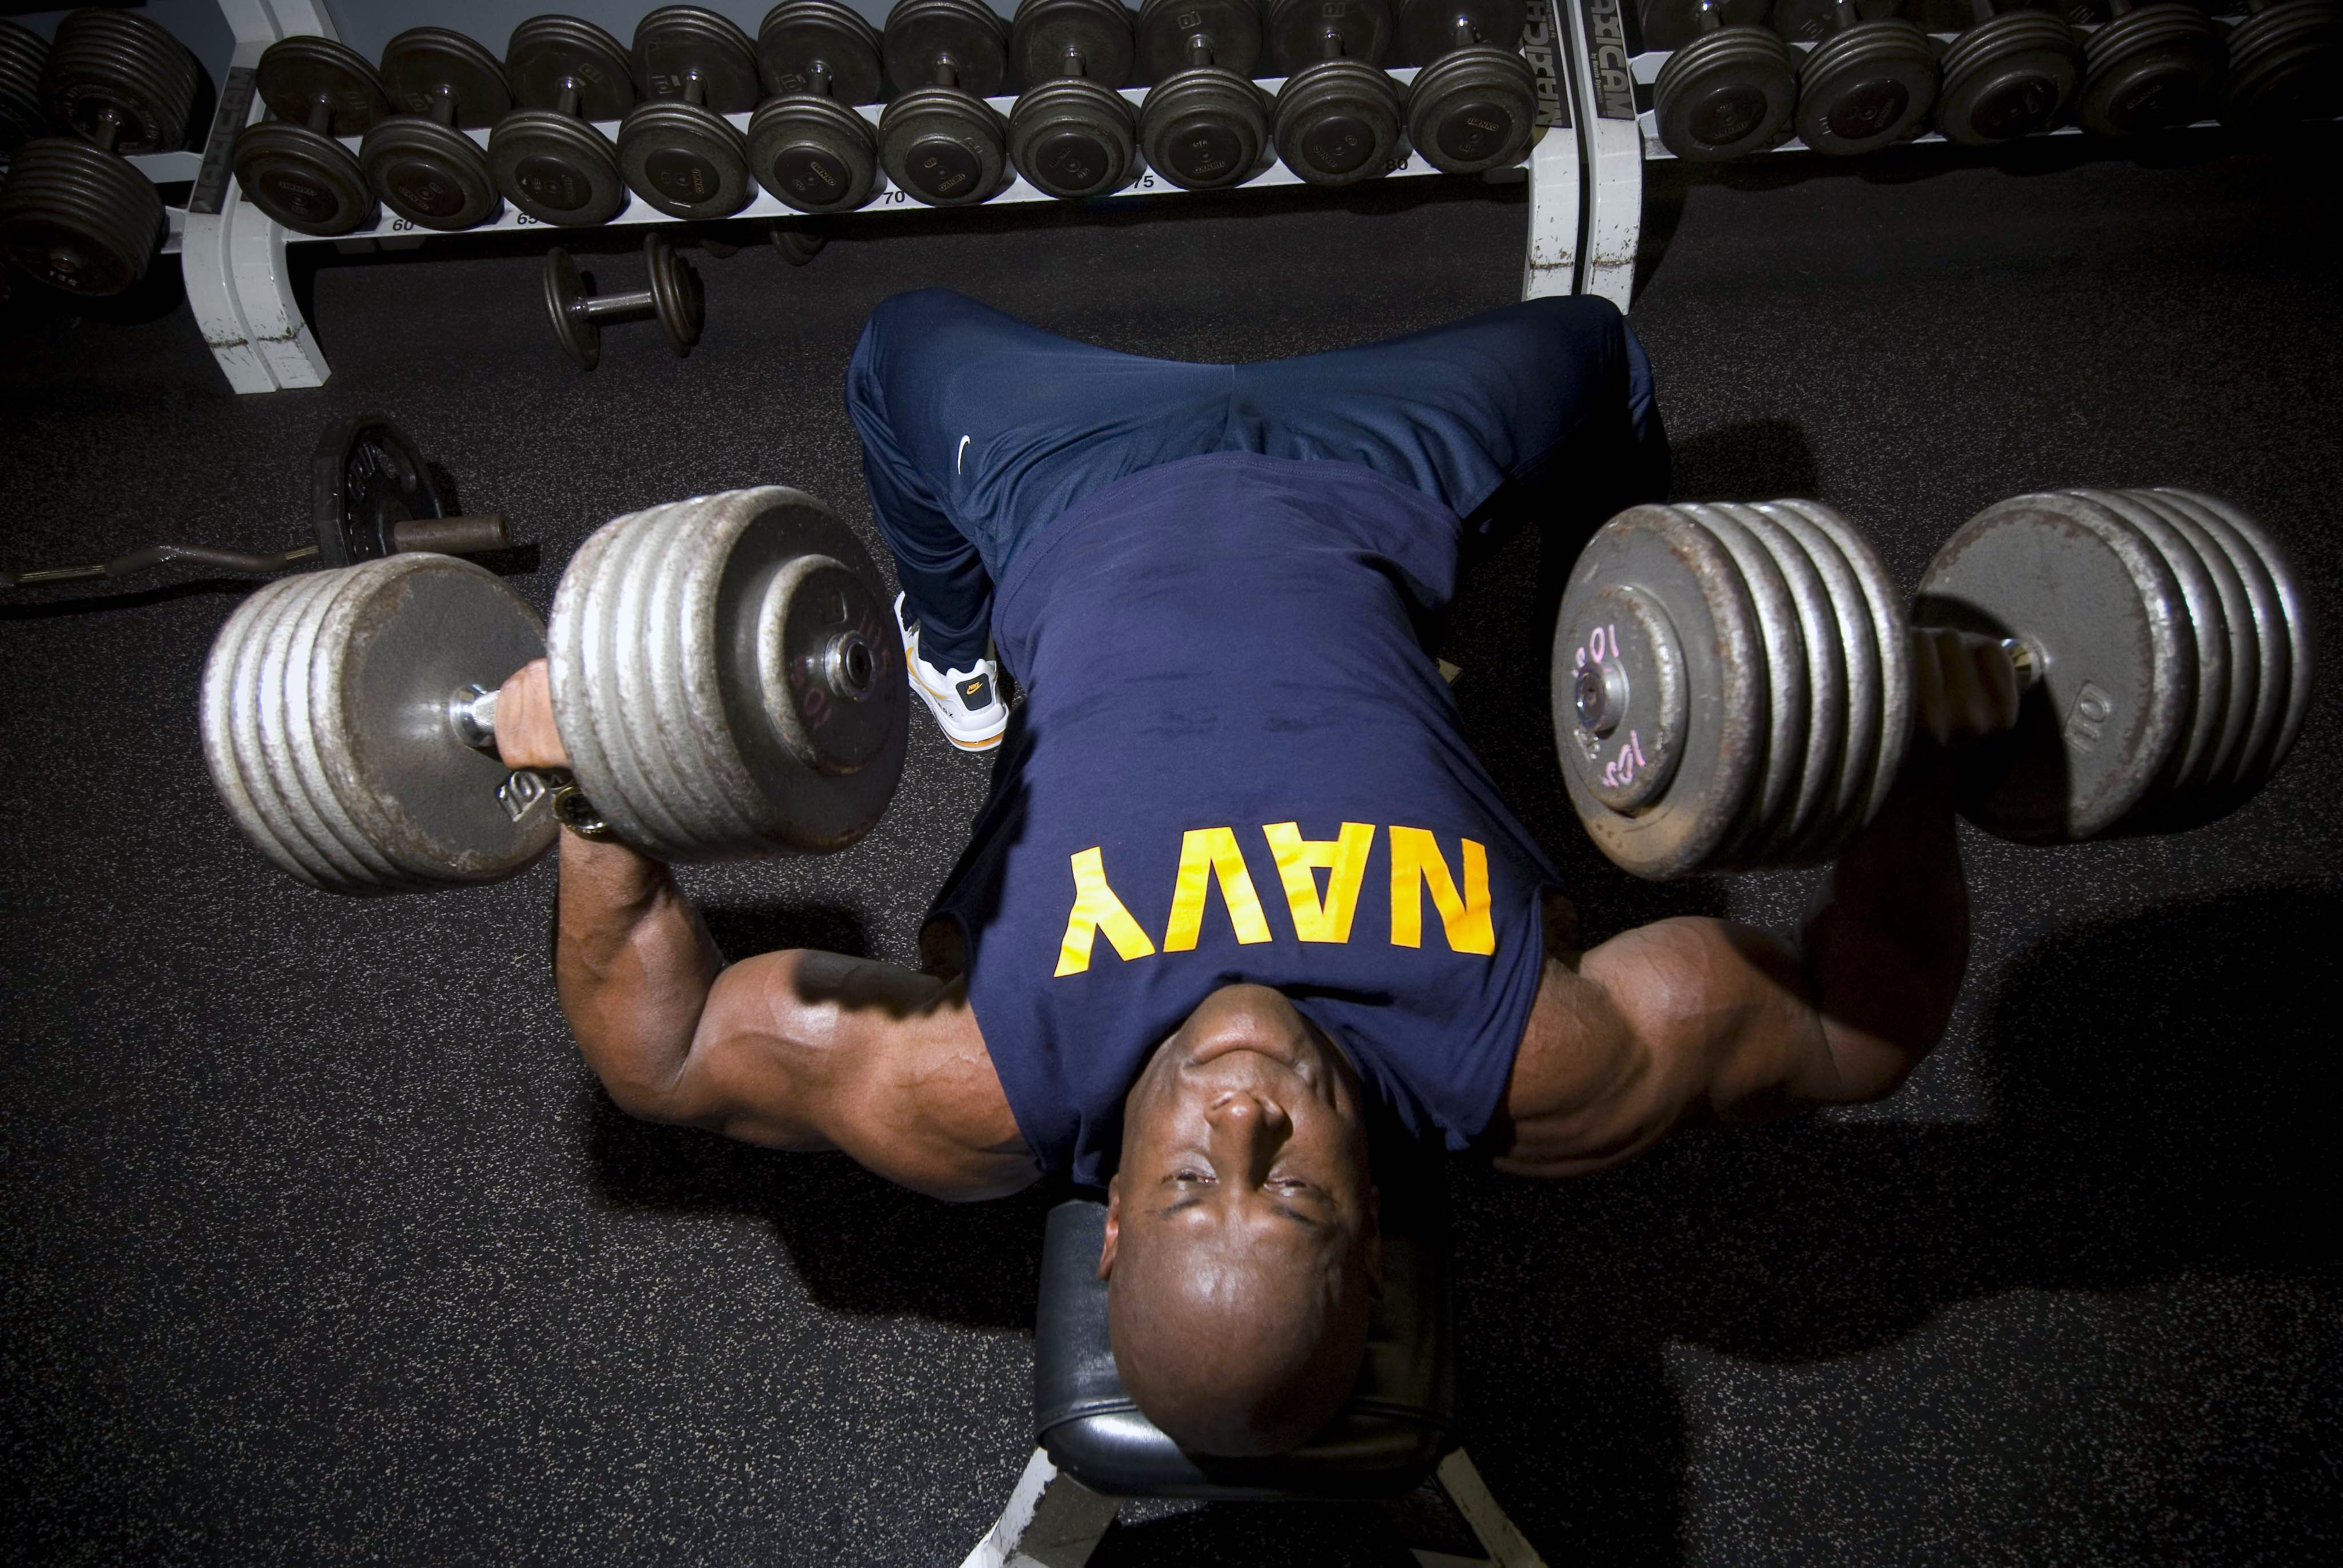 071017-N-0995C-008 PEARL HARBOR, Hawaii (Oct. 17, 2007) - Chief Mineman Kevin Sperling, an officer recruiter at Navy Recruiting Processing Station Honolulu, presses two 105-pound dumbbells to exercise his chest during a workout in Bloch Arena Gym at Naval Station Pearl Harbor. Sperling has been in the sport of bodybuilding for the past 10 years and was proclaimed ÒMr. HawaiiÓ in the 29th Hawaiian Islands Bodybuilding and Figure Championships held June 30. Most recently, he garnered a 10th place finish in the U.S.A. Body Building Championship, held in Las Vegas, July 27-28. U.S. Navy photo by Mass Communication Specialist 3rd Class Eric J. Cutright (RELEASED)